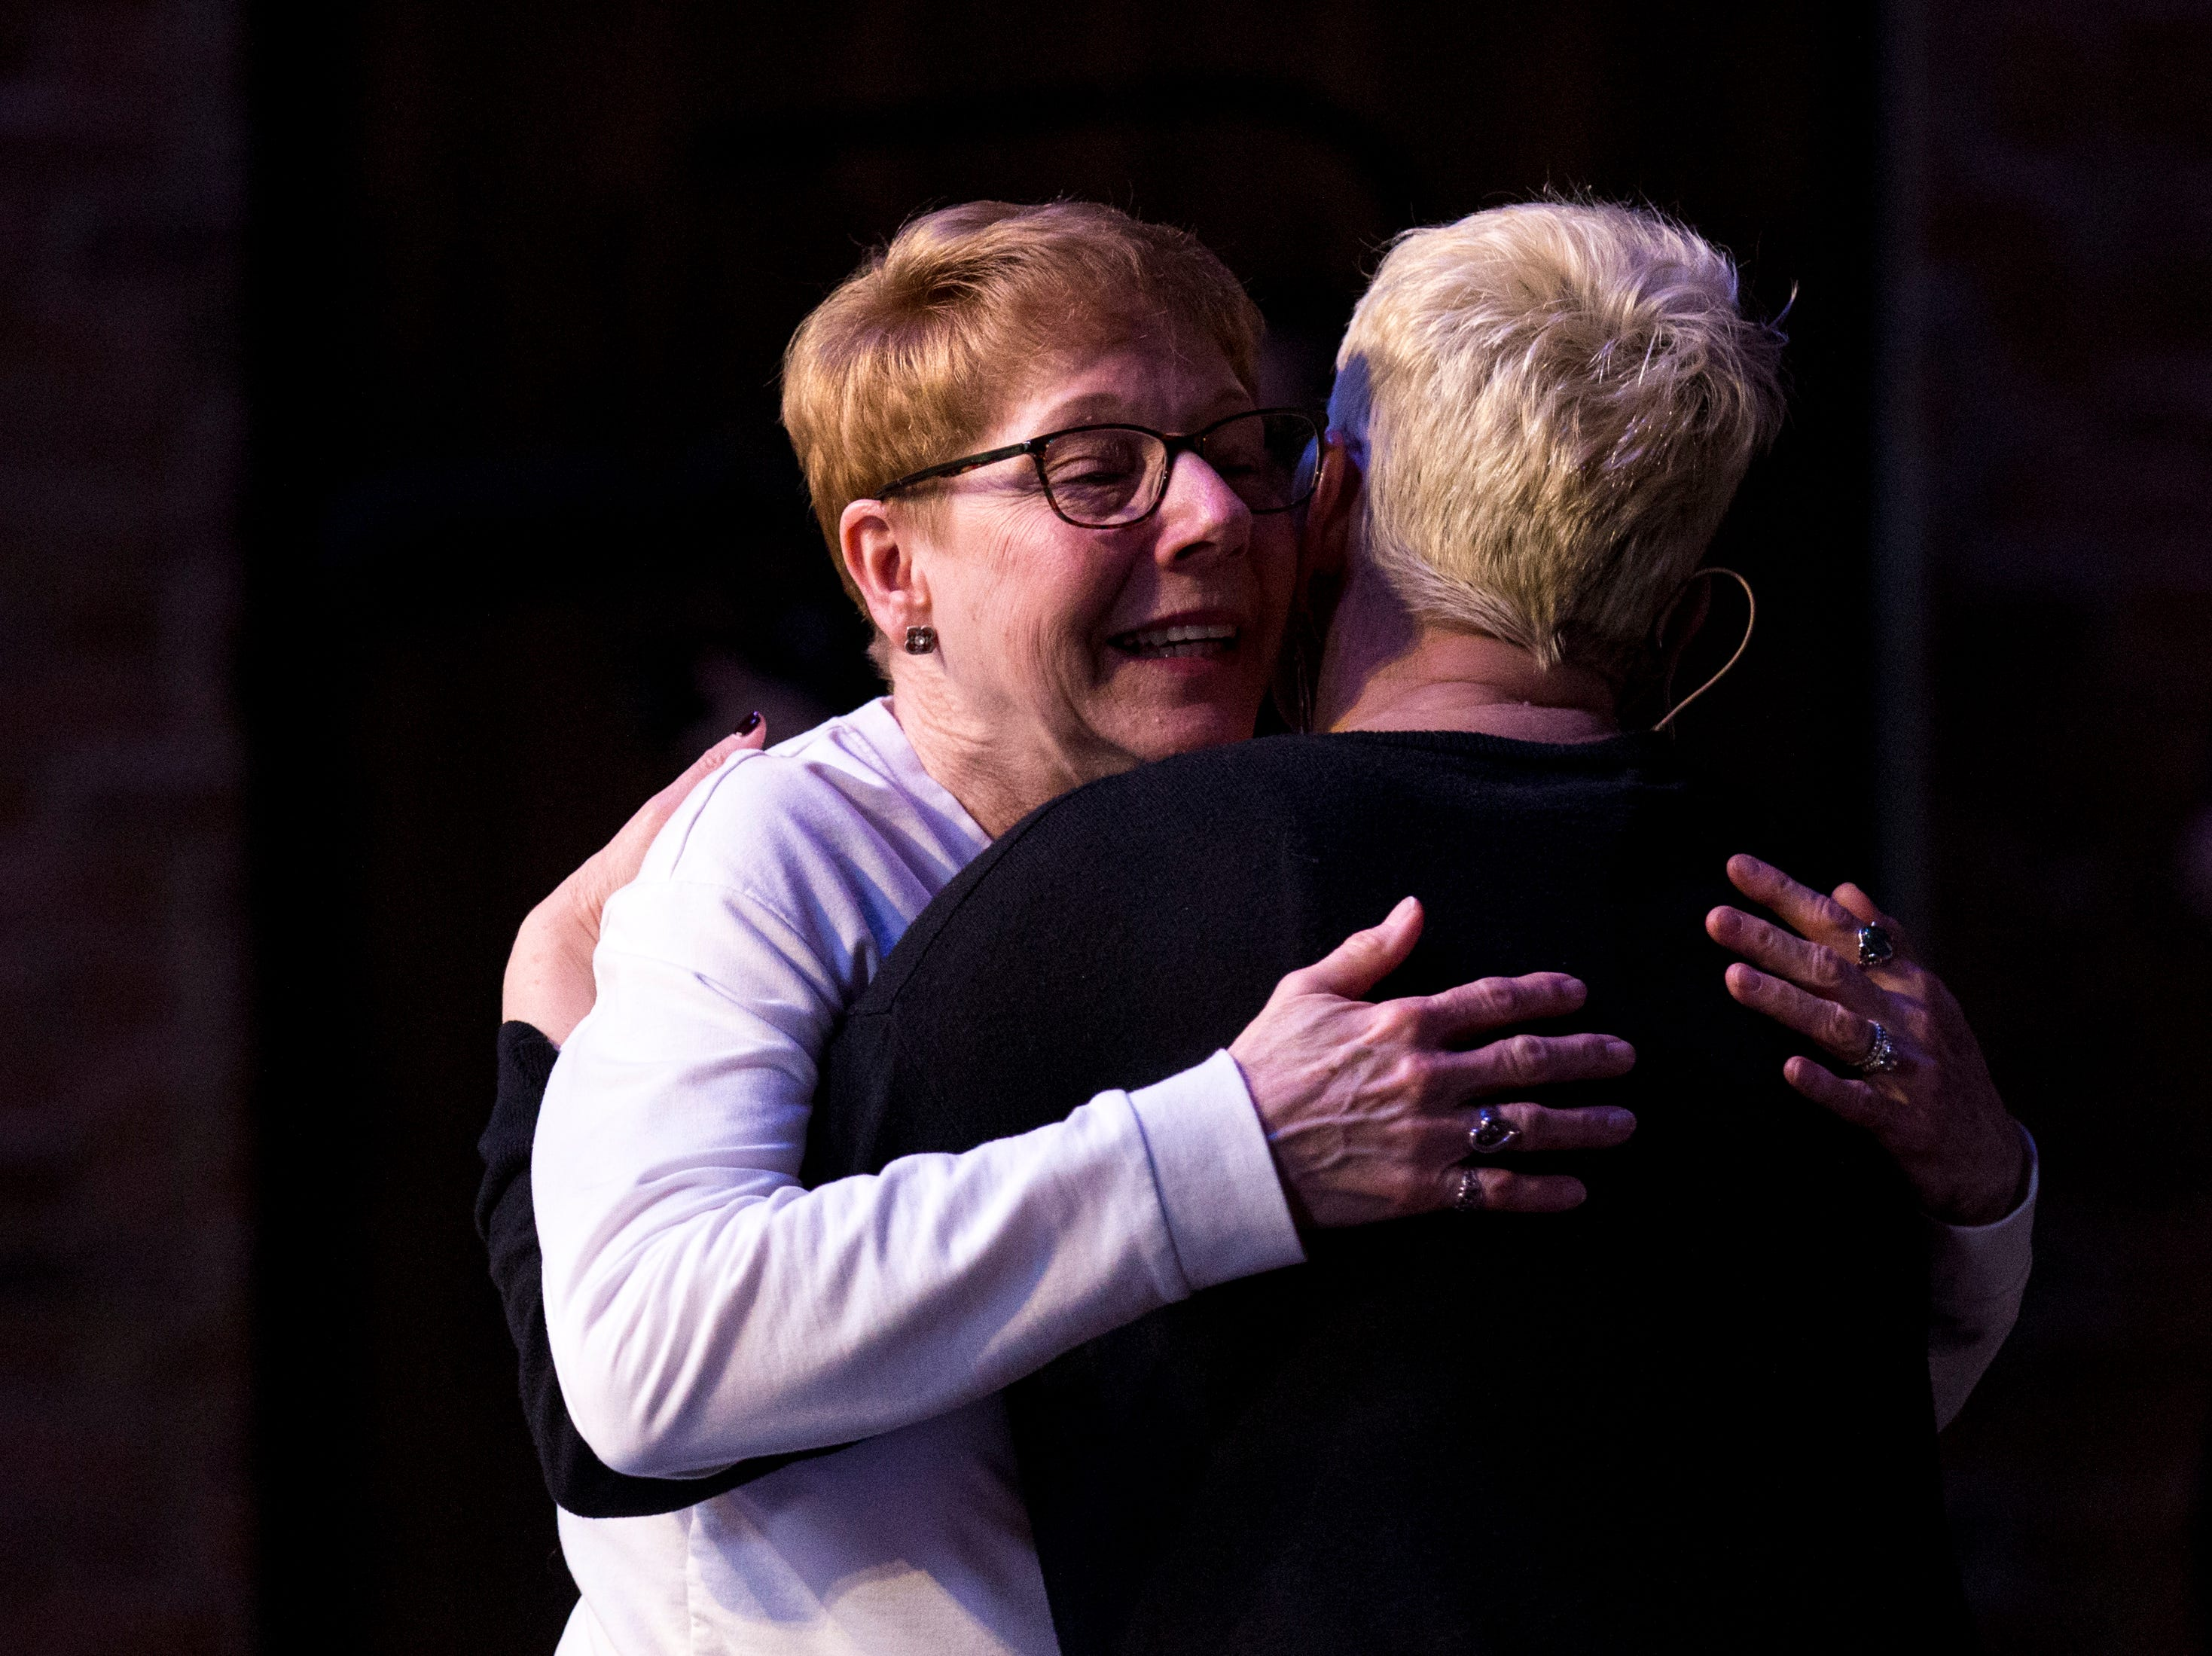 Liz Dyer hugs Sara Cunningham at GracePointe Church in Nashville on Sunday, March 31, 2019. Cunningham spoke about her journey to accepting her son as a gay man while keeping her faith.